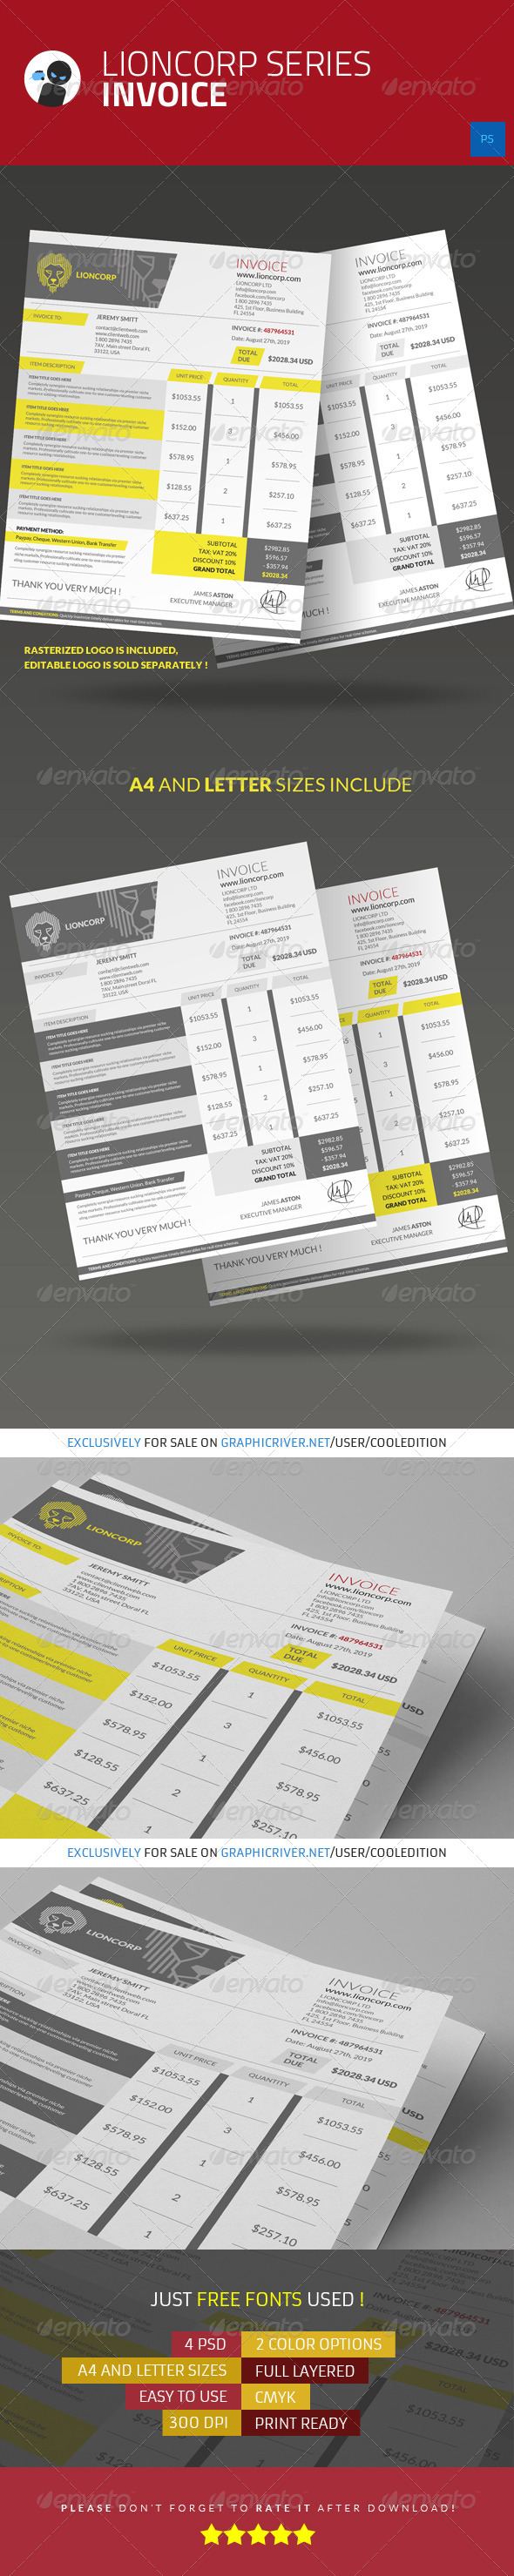 GraphicRiver Lioncorp Series Letterhead 5389438